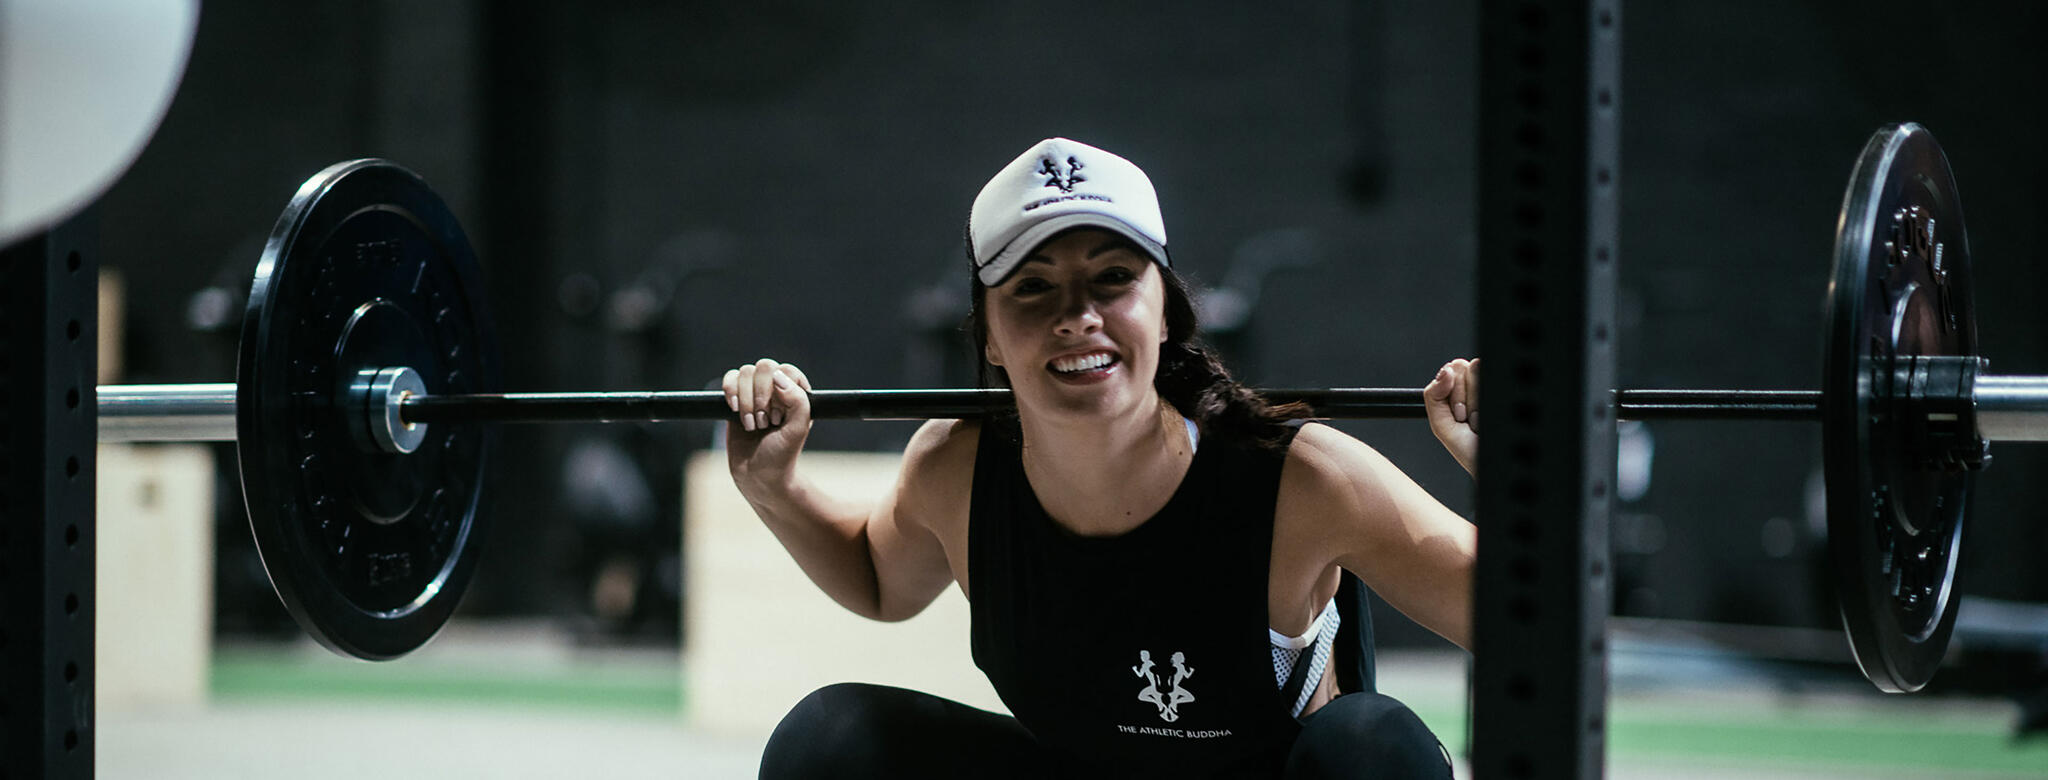 Woman working out at Athletic Buddha